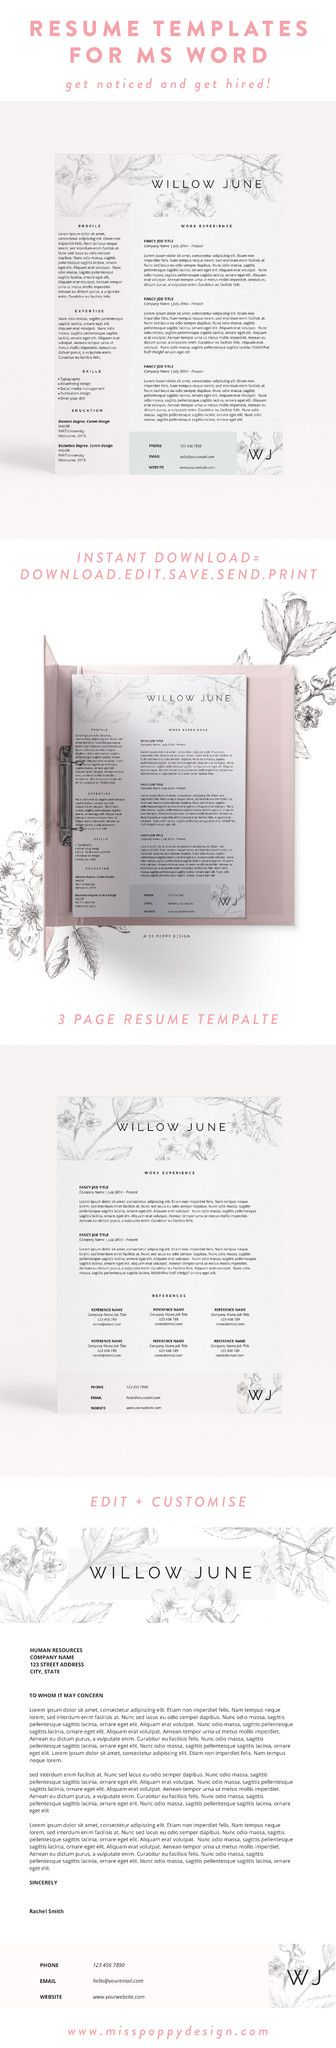 Best 25+ Resume maker professional ideas on Pinterest Resume - how to make a resume online for free